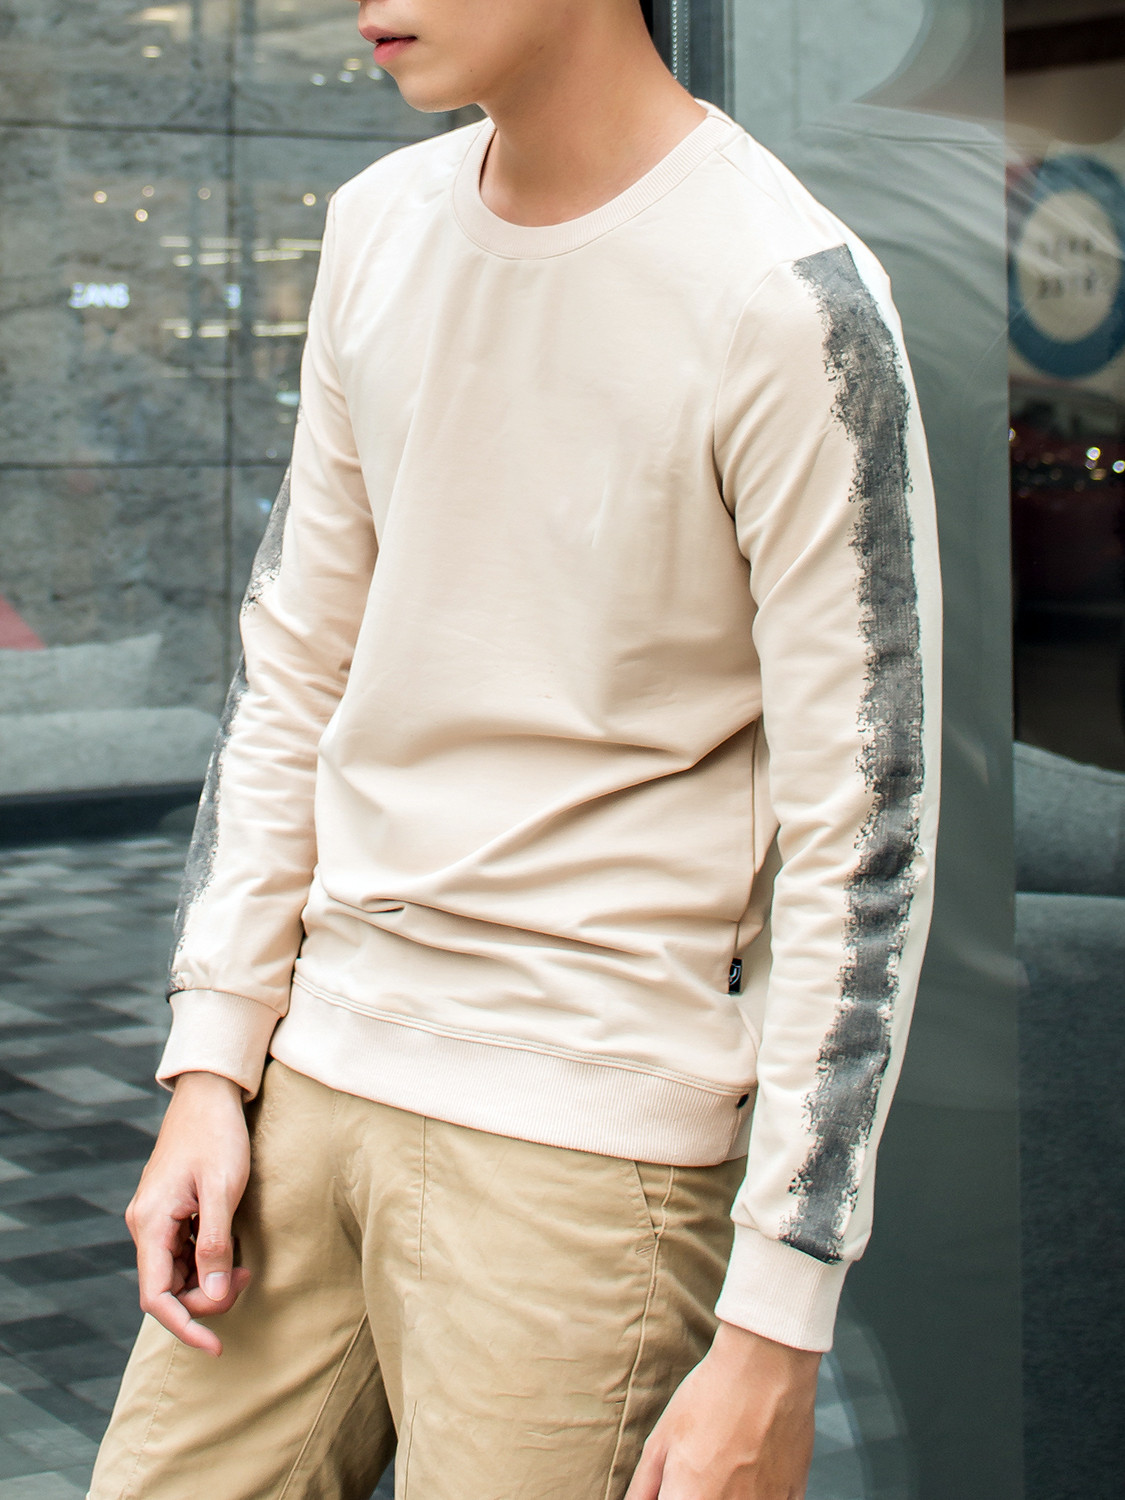 Men's outfit idea for 2021 with neutral plain sweatshirt, neutral chinos, white sneakers. Suitable for spring, fall and winter.